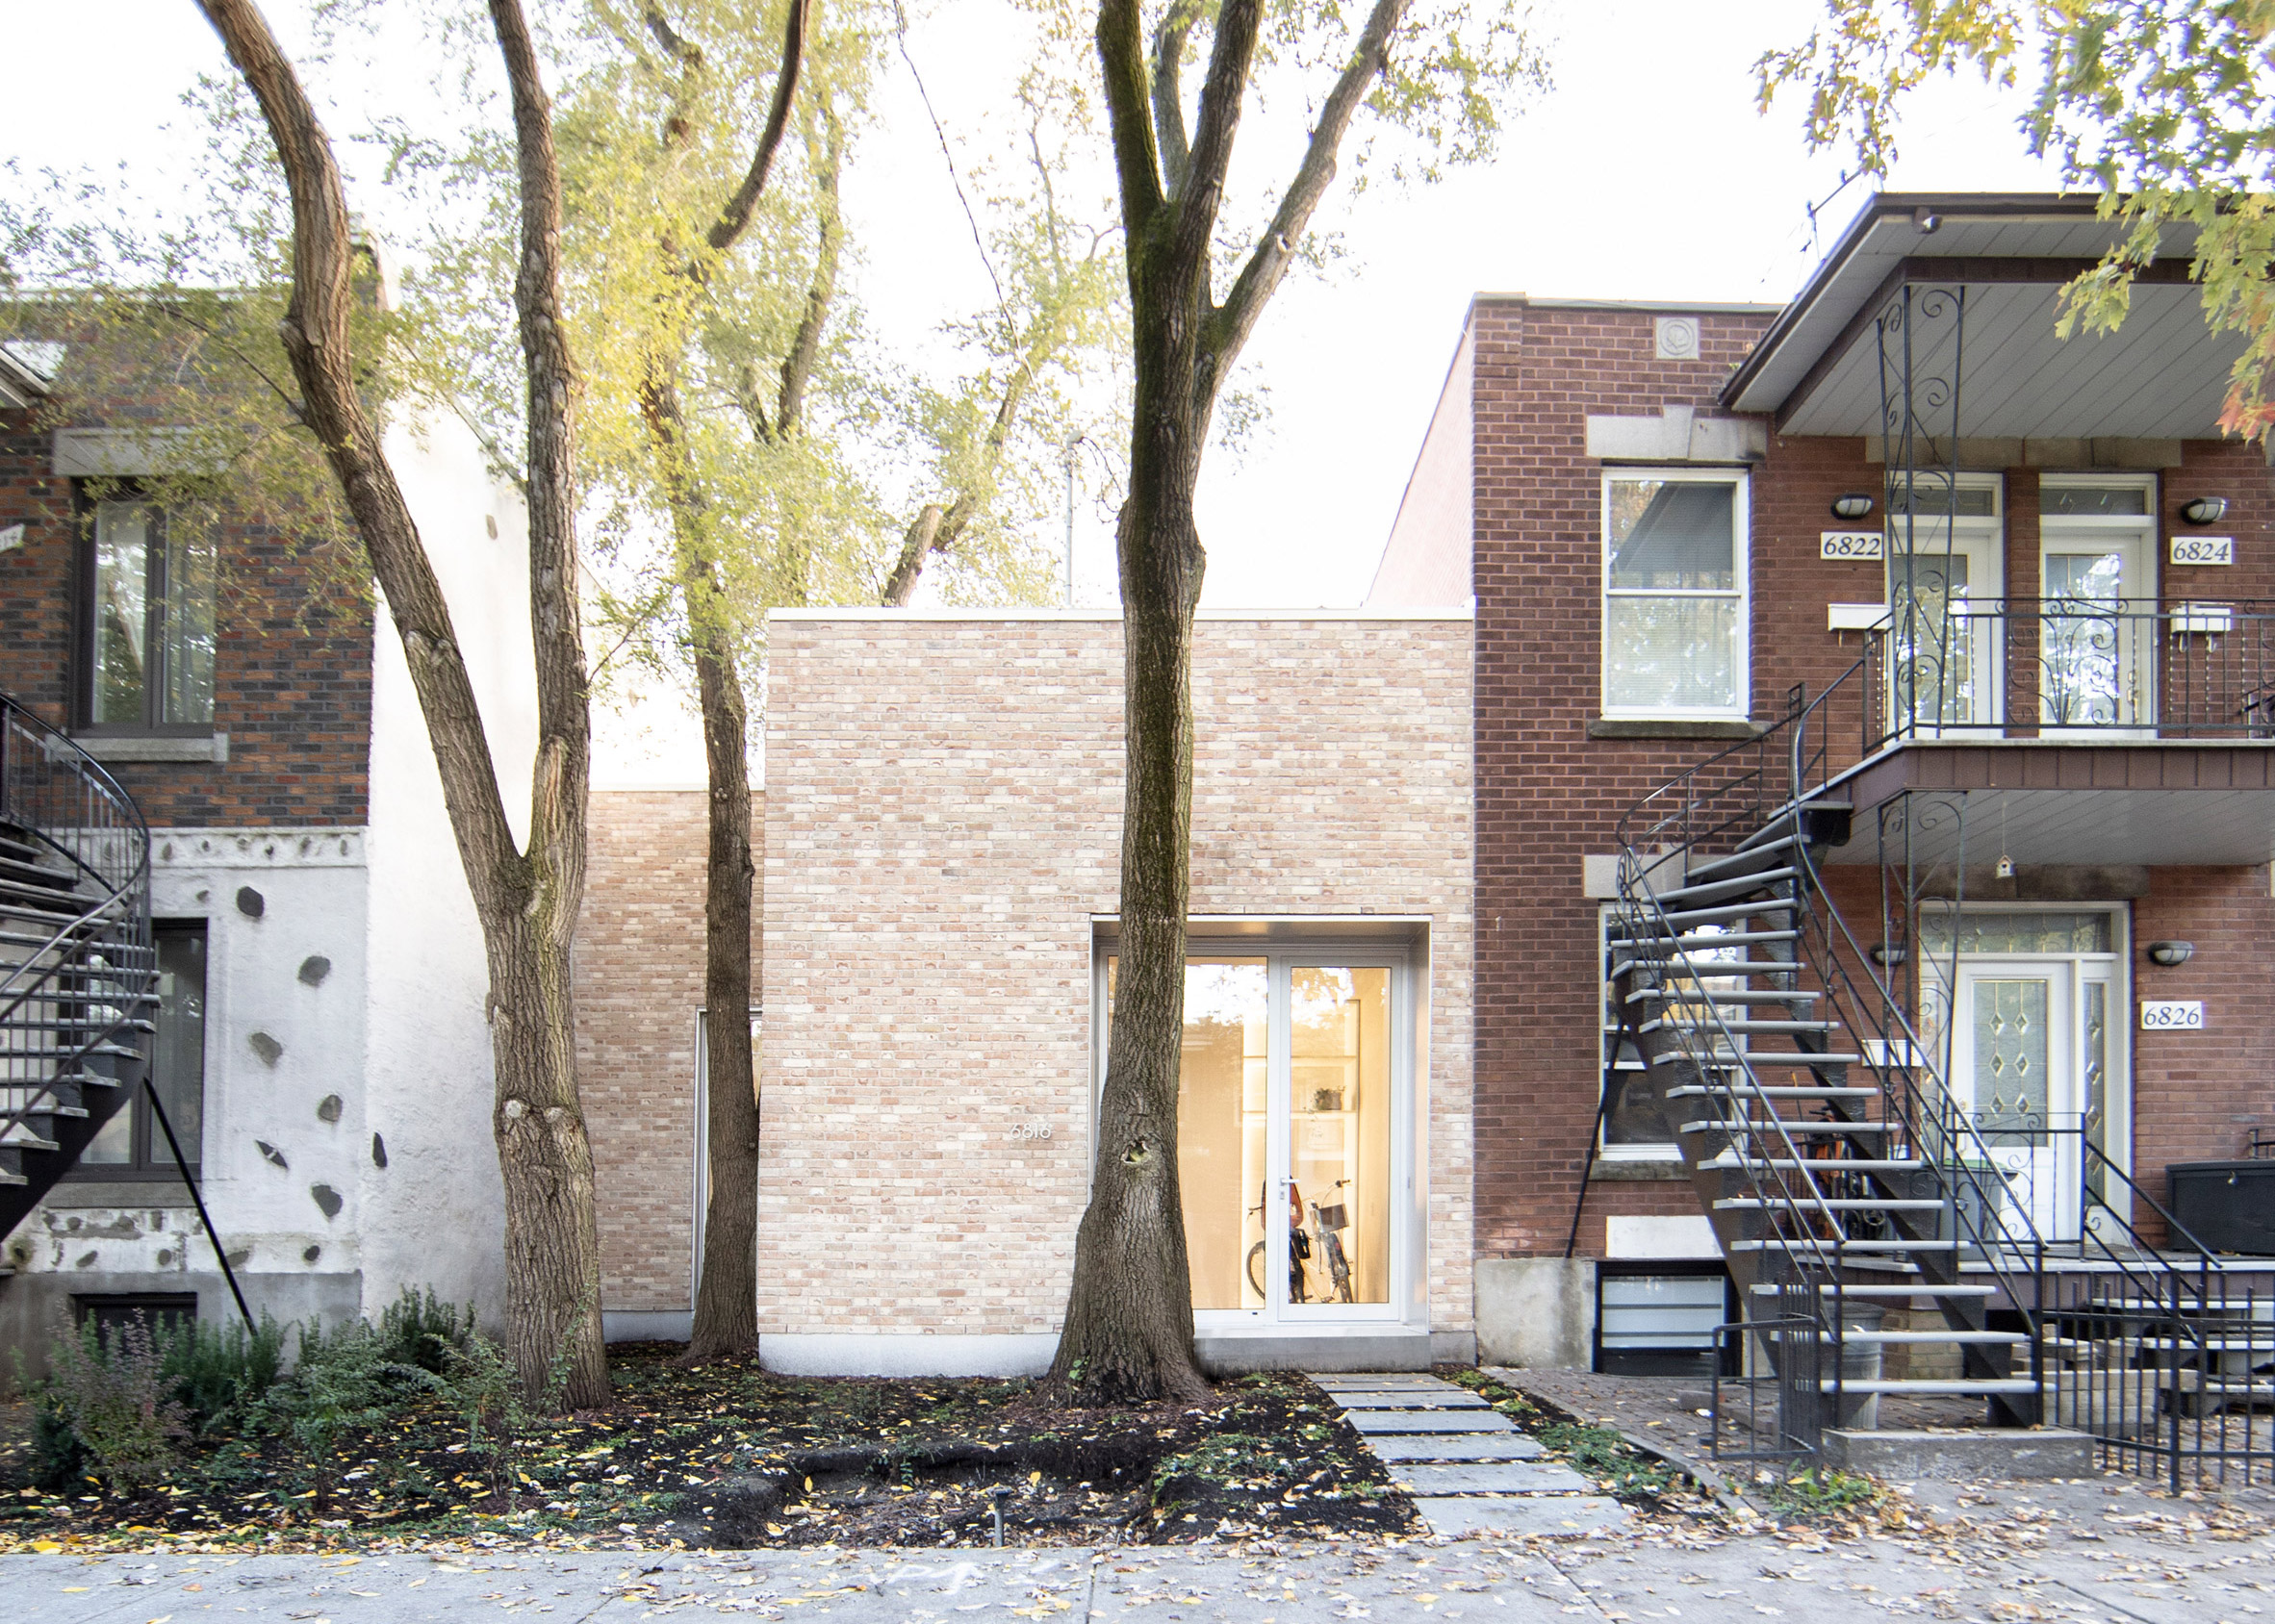 """TBA adds pale brick volume to traditional Montreal """"shoebox"""" home - This Is What We Are Reading For You"""